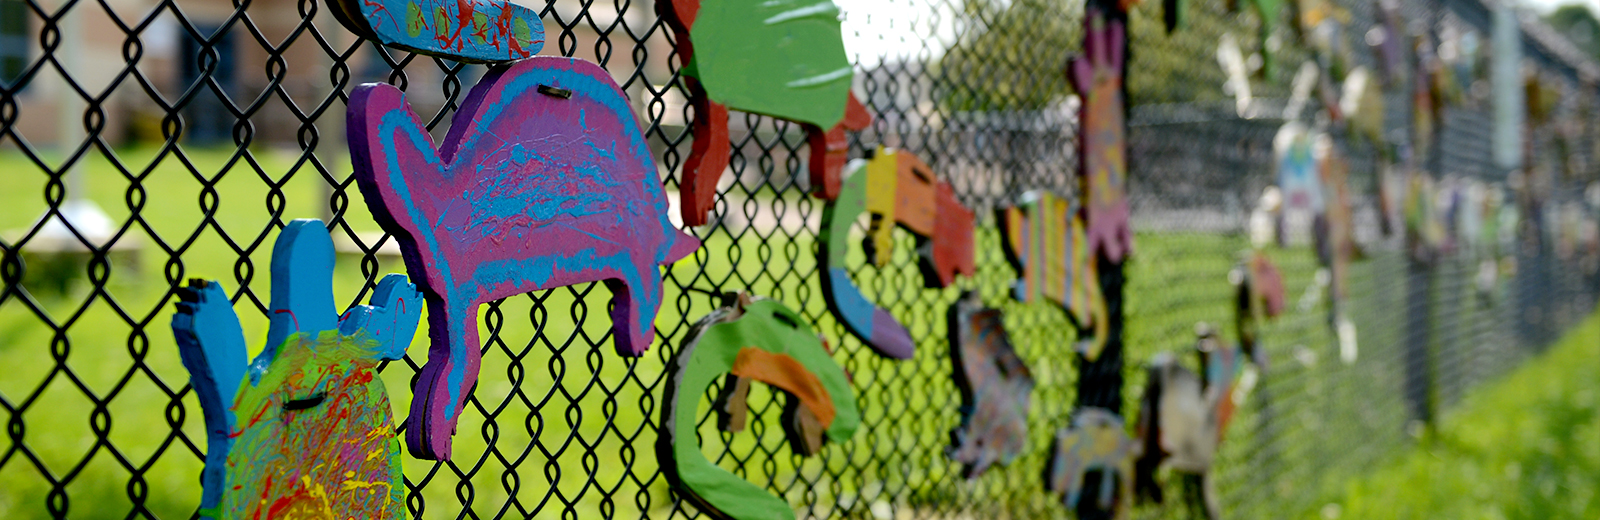 painted fish on school fence